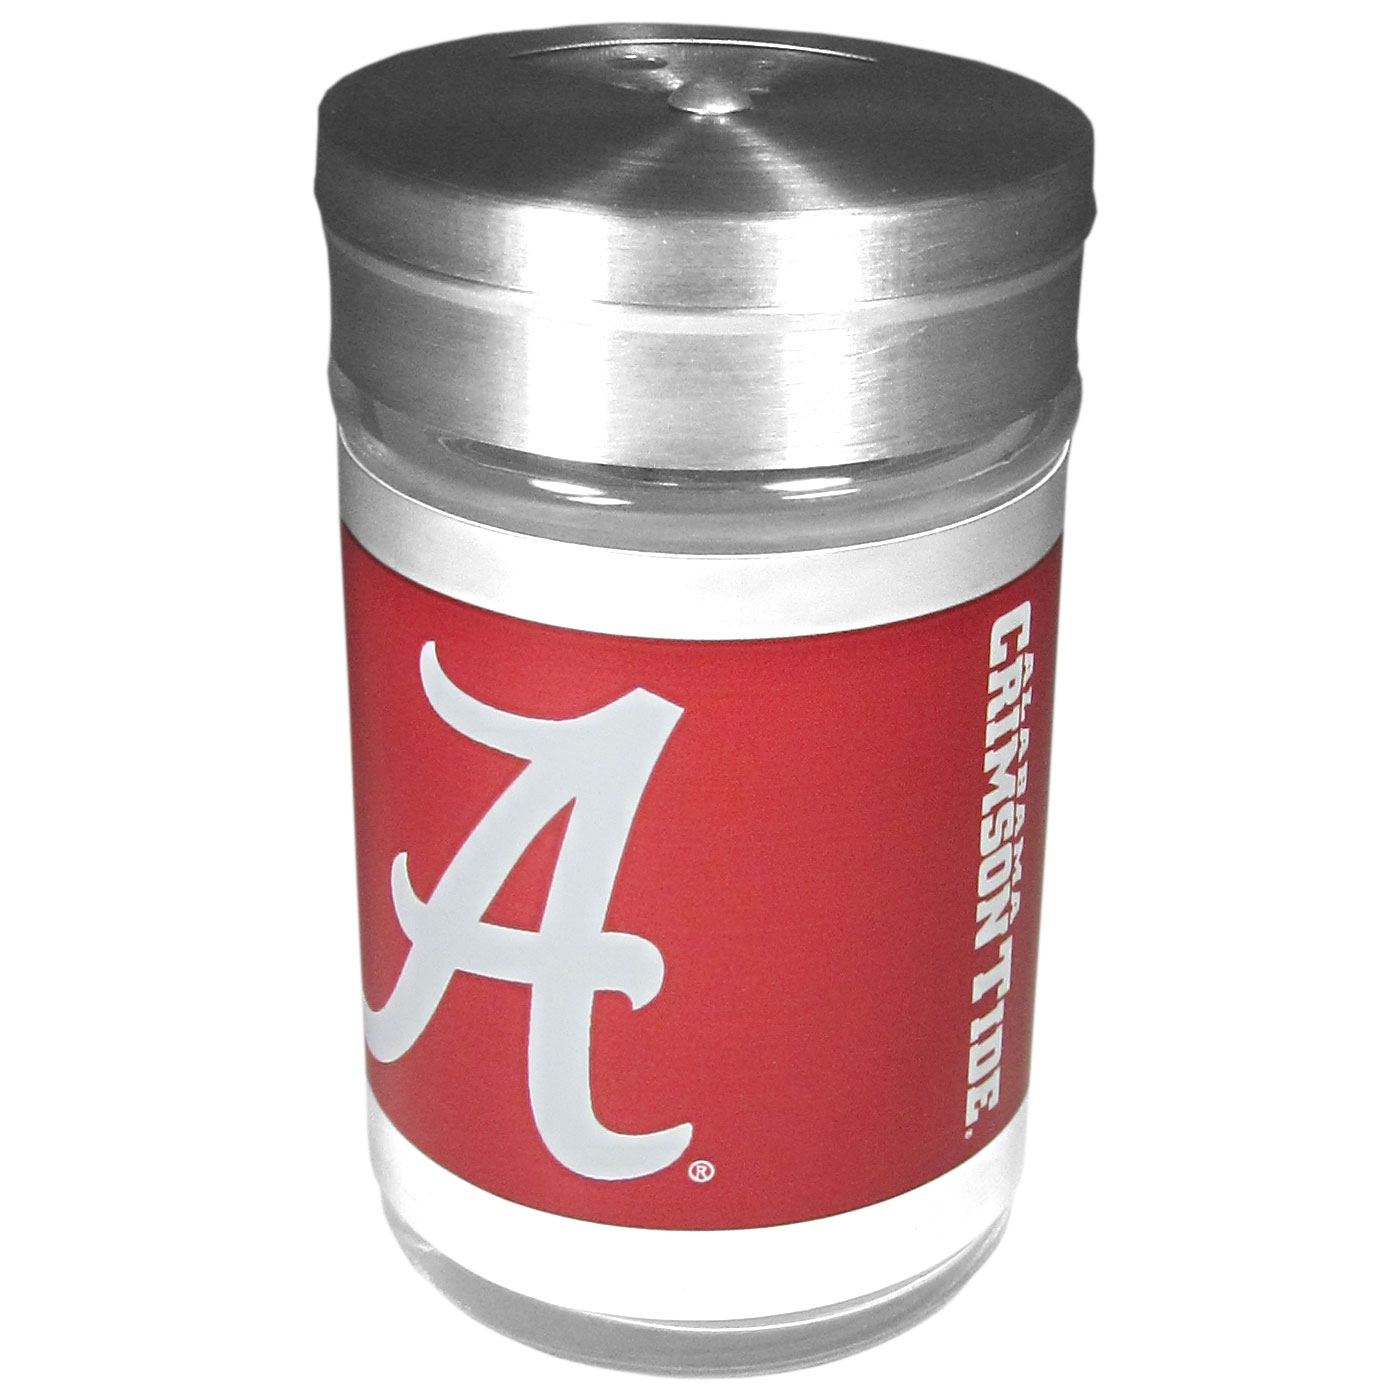 Alabama Crimson Tide Tailgater Season Shakers - Spice it up with our Alabama Crimson Tide tailgater season shakers! This compact shaker is 2 inch tall with a twist top that closes off the holes at the top making it perfect for travel preventing those messy spills. The shaker has wide holes perfect for keeping your pepper seeds or cheese toppings. The bright team graphics will make you the envy of the other fans while you are grilling up your tailgating goodies.